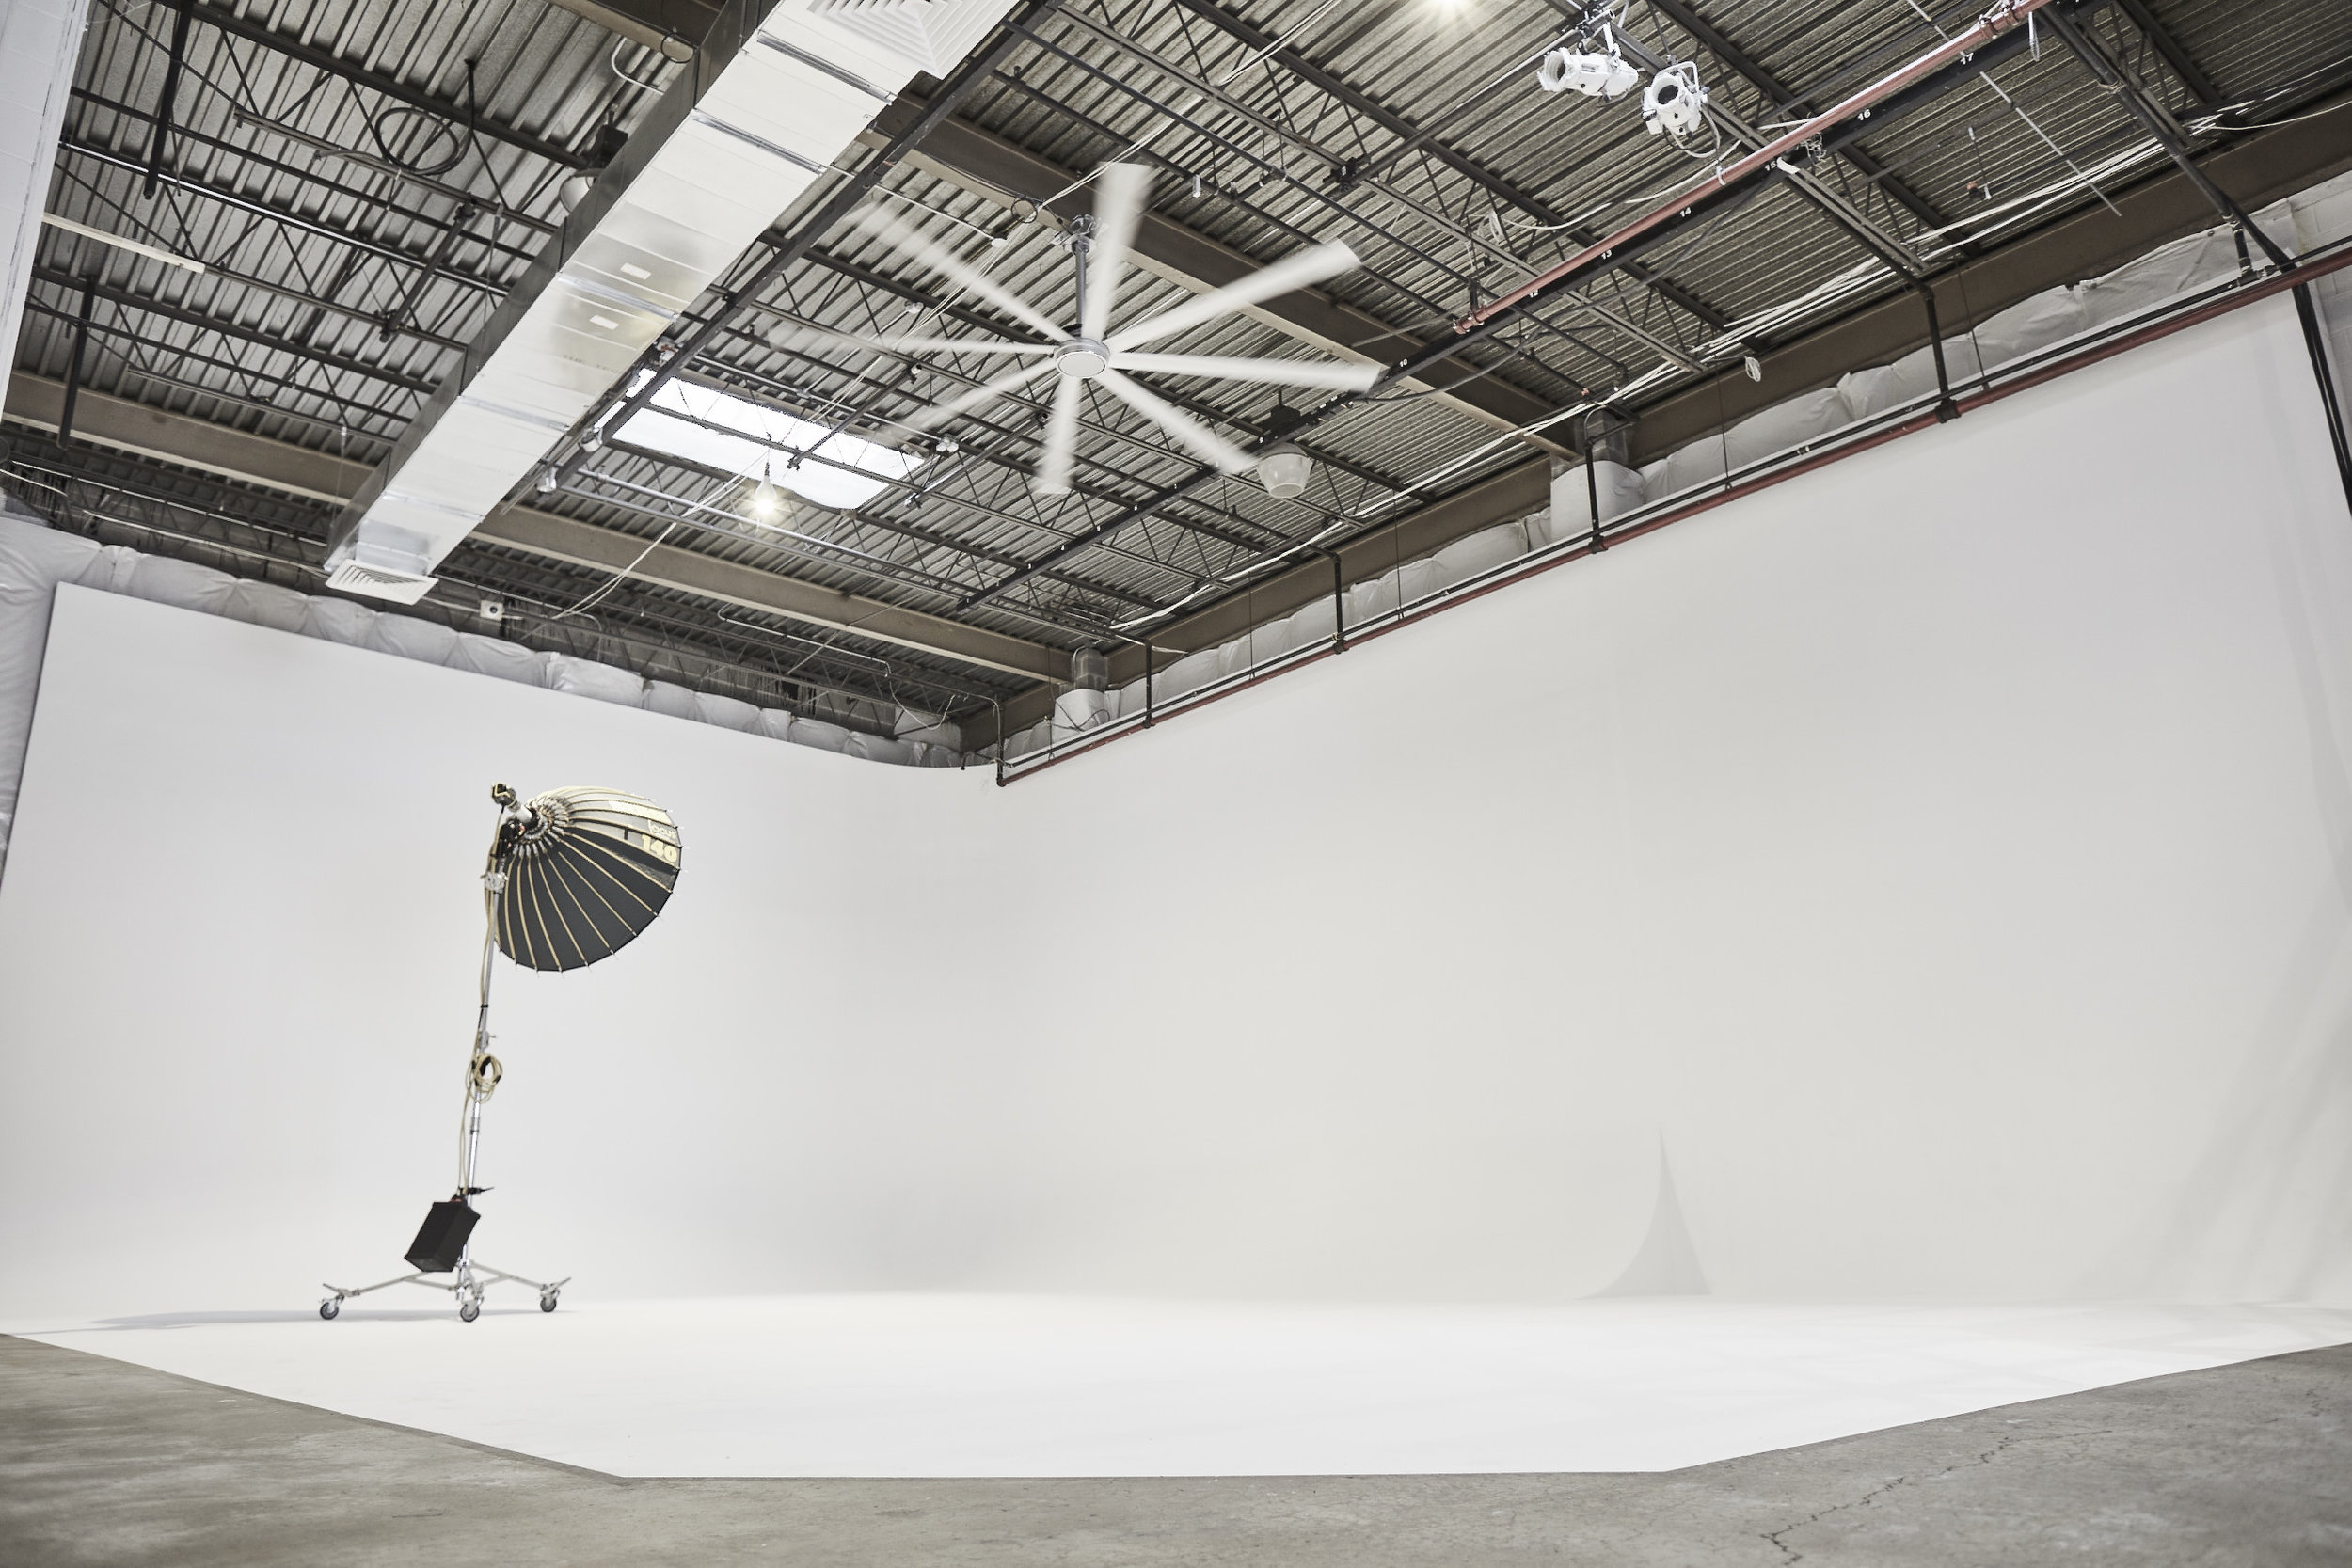 Photo & Film Studio   7,000 SF Cyclorama Studio, 20' Tall Ceilings Drive-in / Full Turn, Adjacent Industrial Studio, Patio, Private Parking, Client Lounges, Green Rooms, Mezzanine, Roof Top, Kitchenette, Blackout or Natural Light, High Speed WIFI, Surround Sound, 600amp, and Lifts